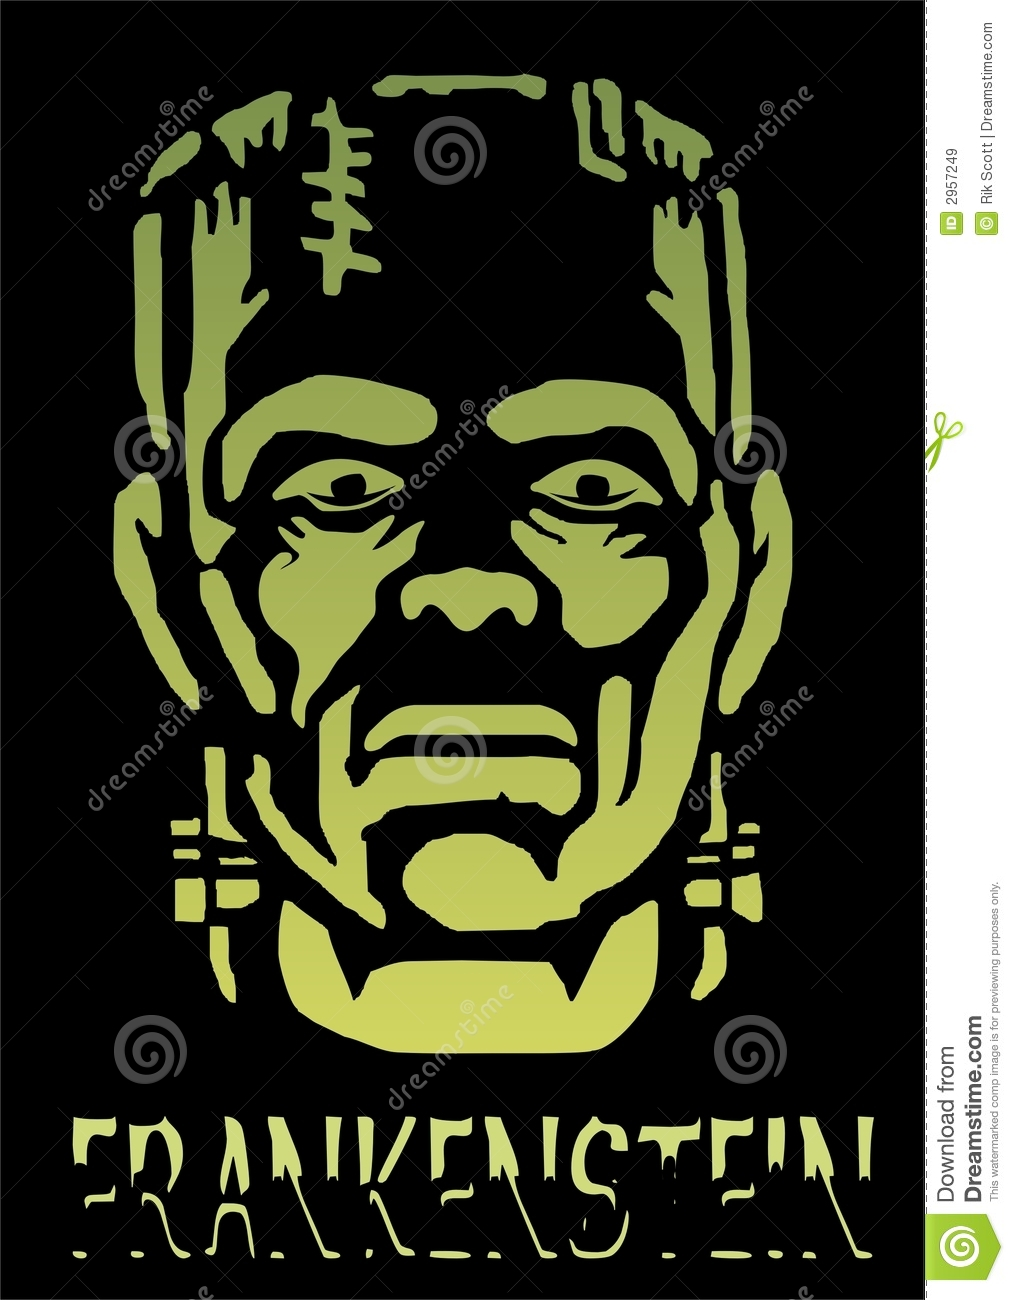 Halloween Frankenstein Royalty Free Stock Images - Image ...